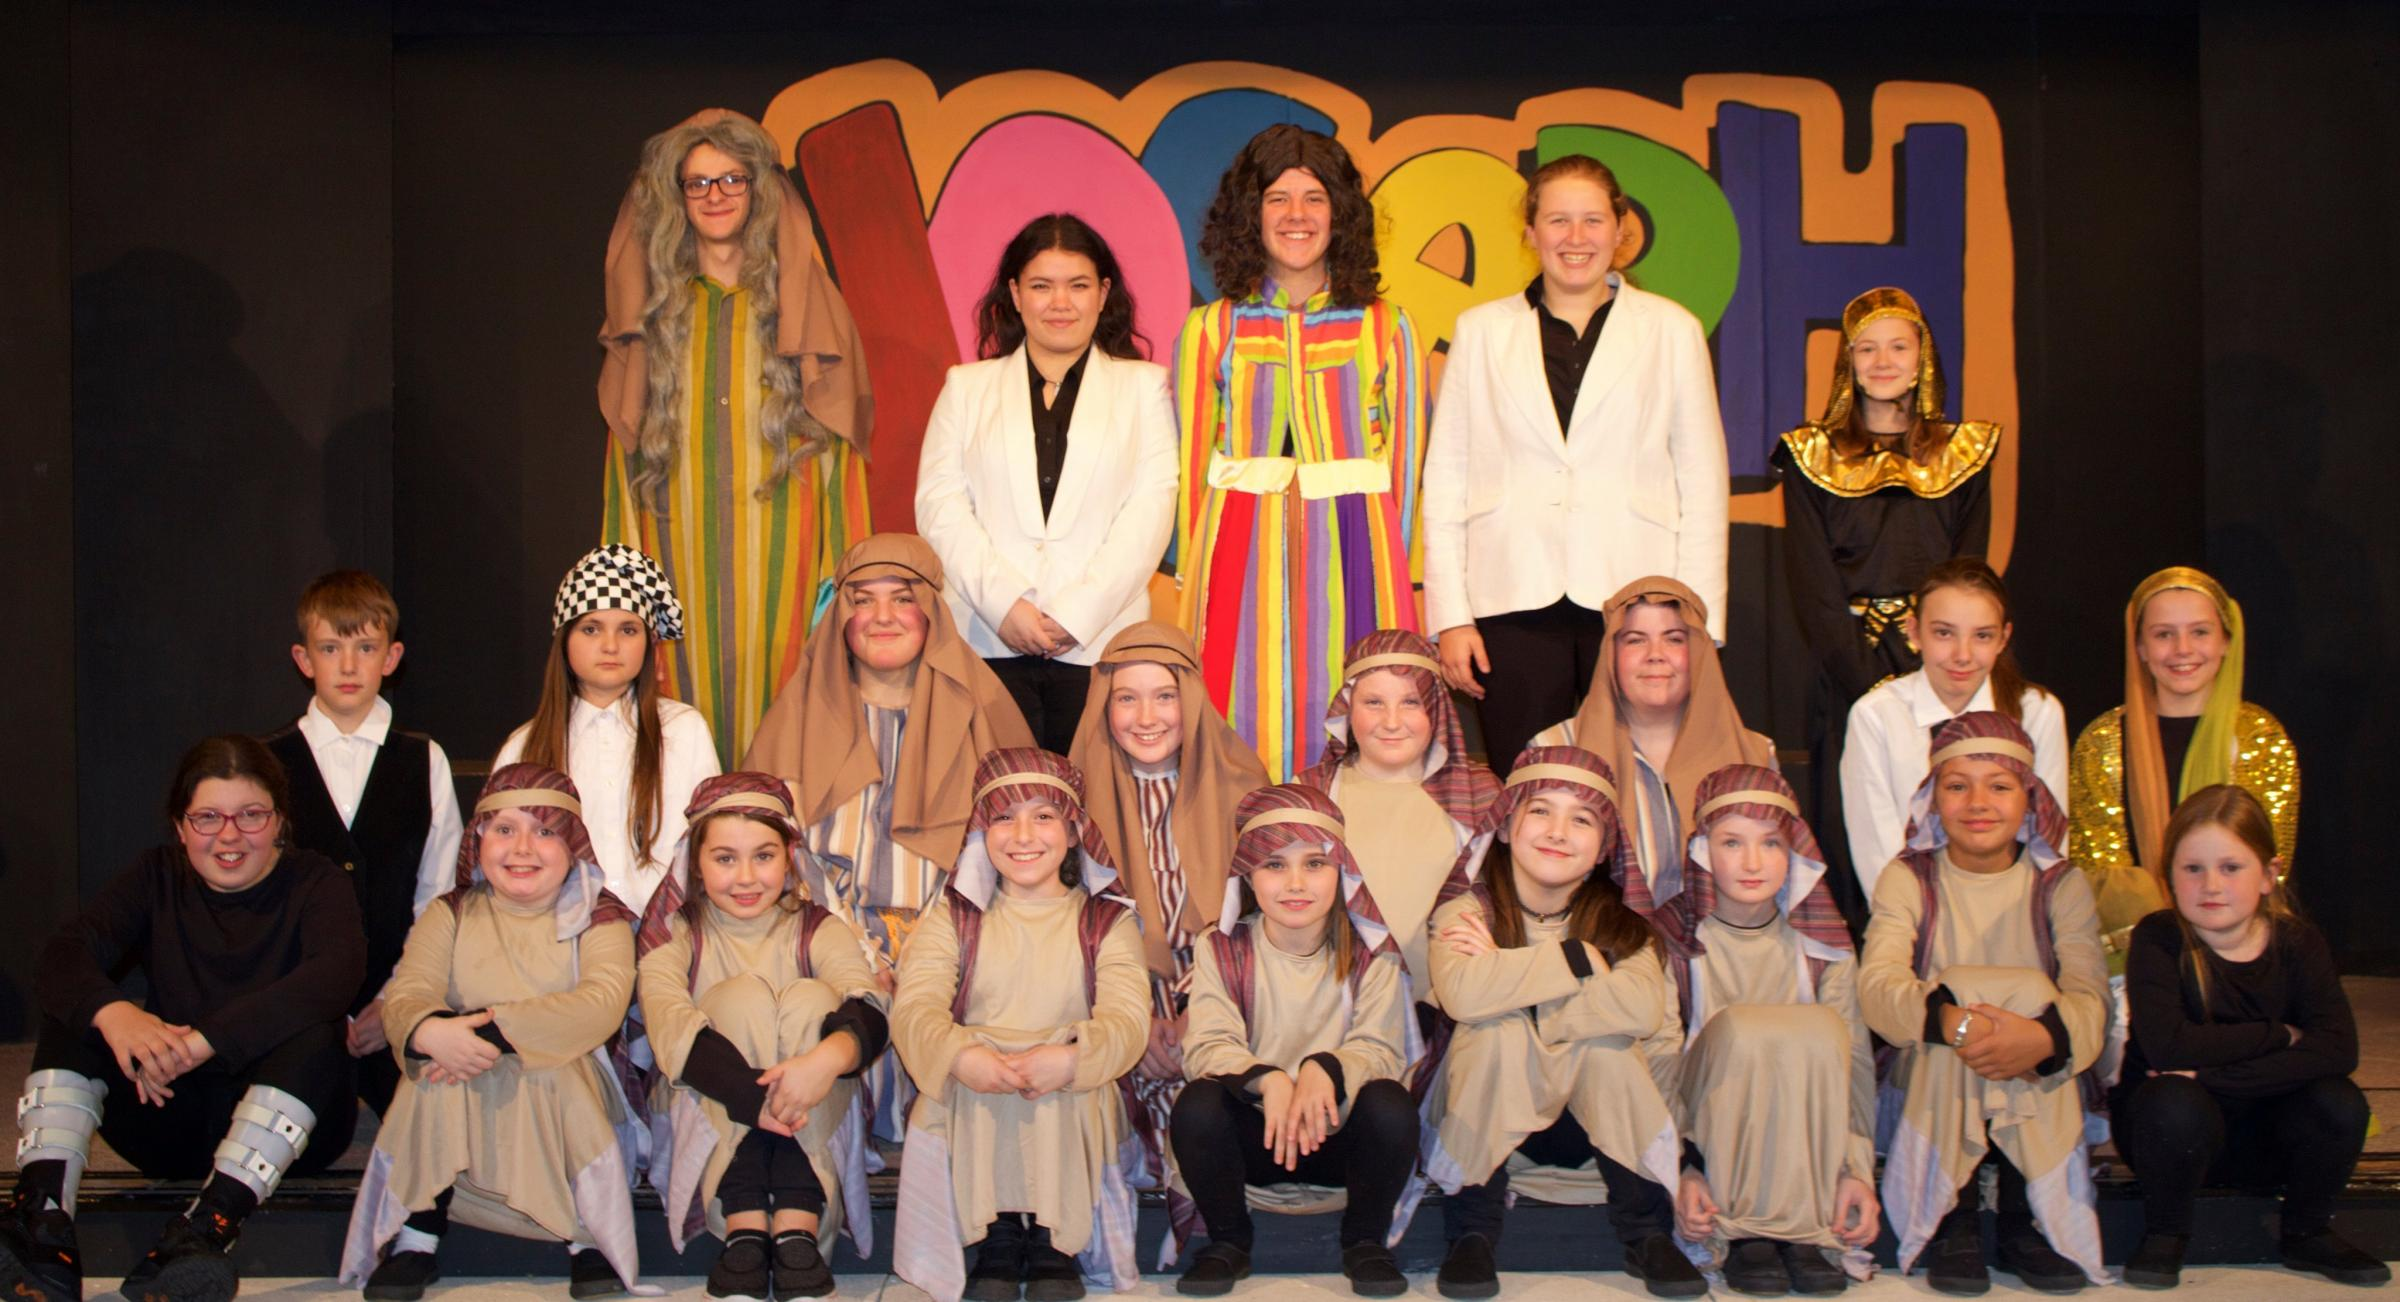 The St Katharine Players cast for Joseph and the Amazing Technicolor Dreamcoat.